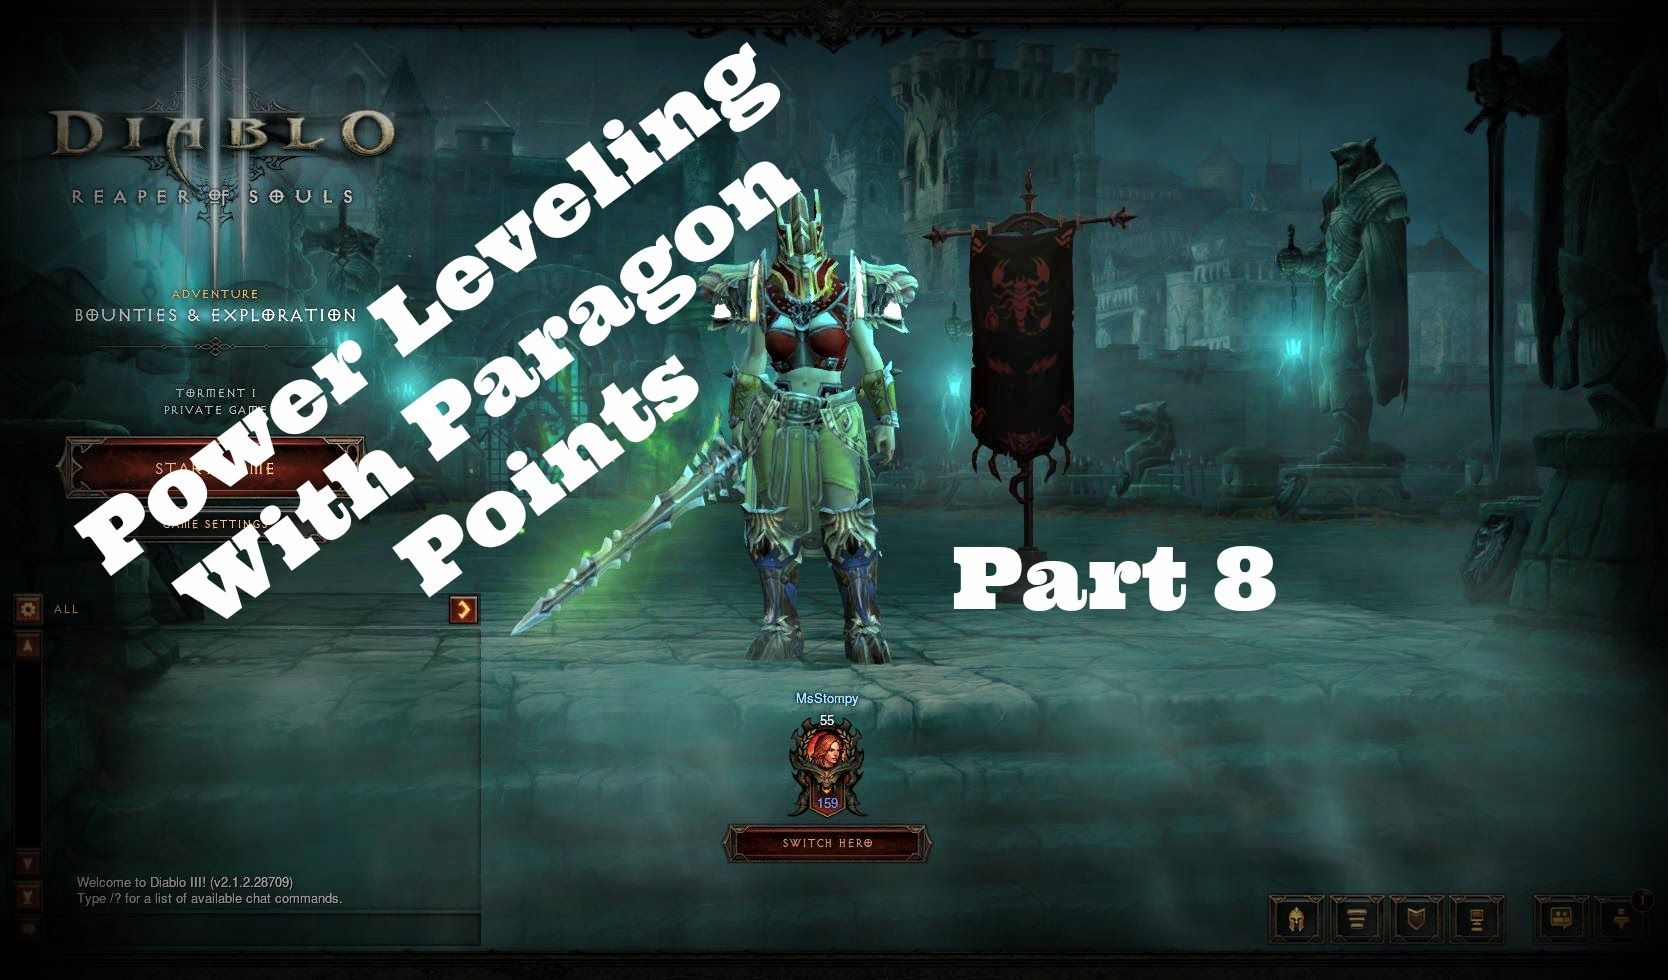 Diablo 3 Ros Power Leveling With Paragon Points Pt8 Barb Walkthrough Diablo 3 Diablo Paragon